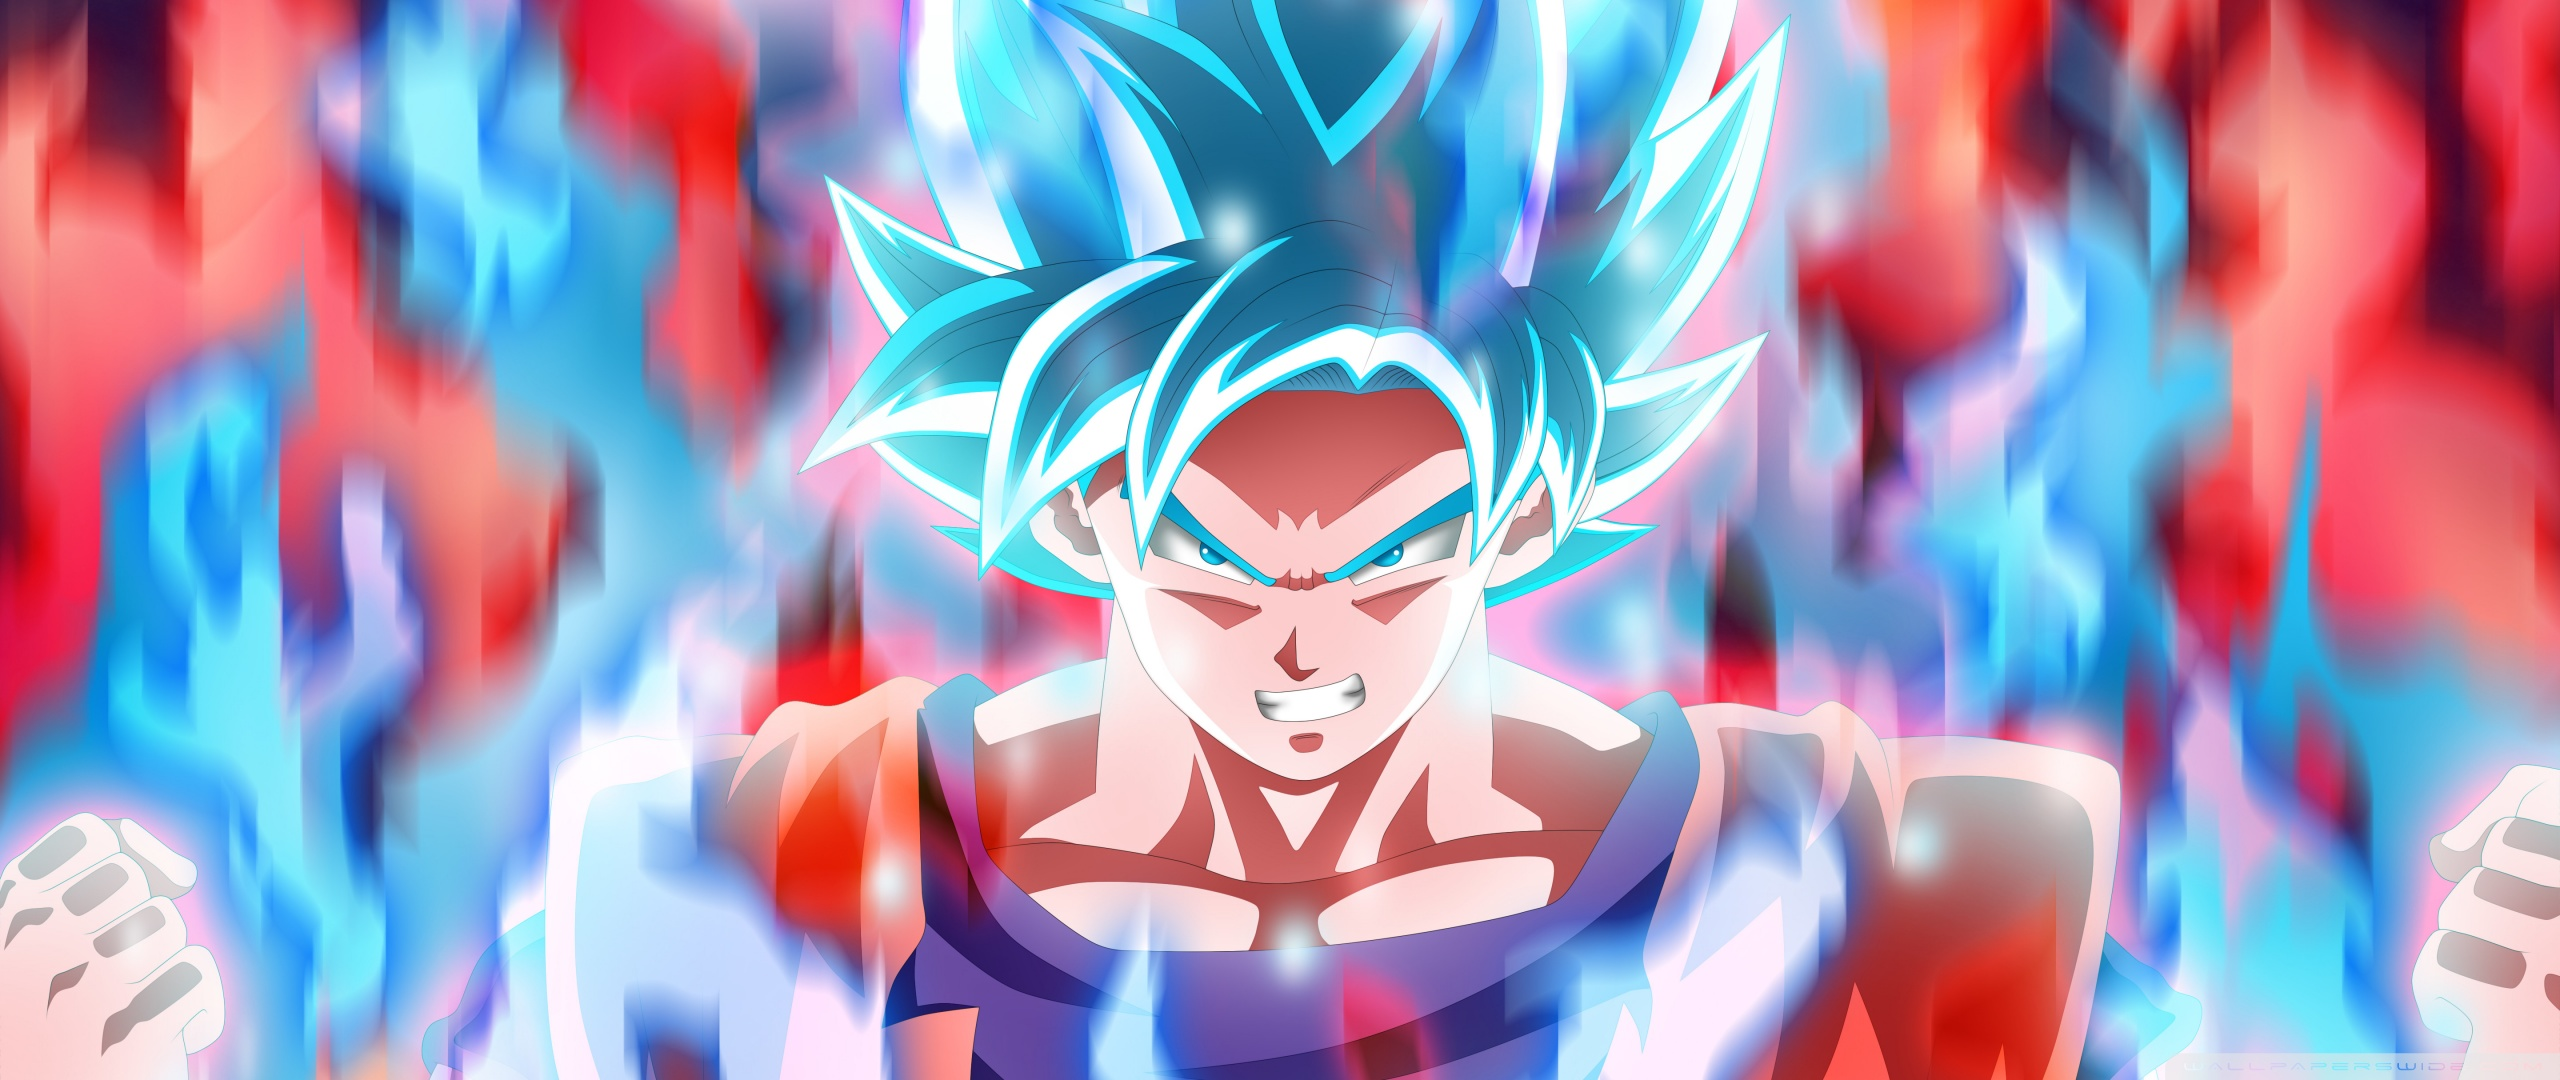 Download Goku Wallpaper For Android